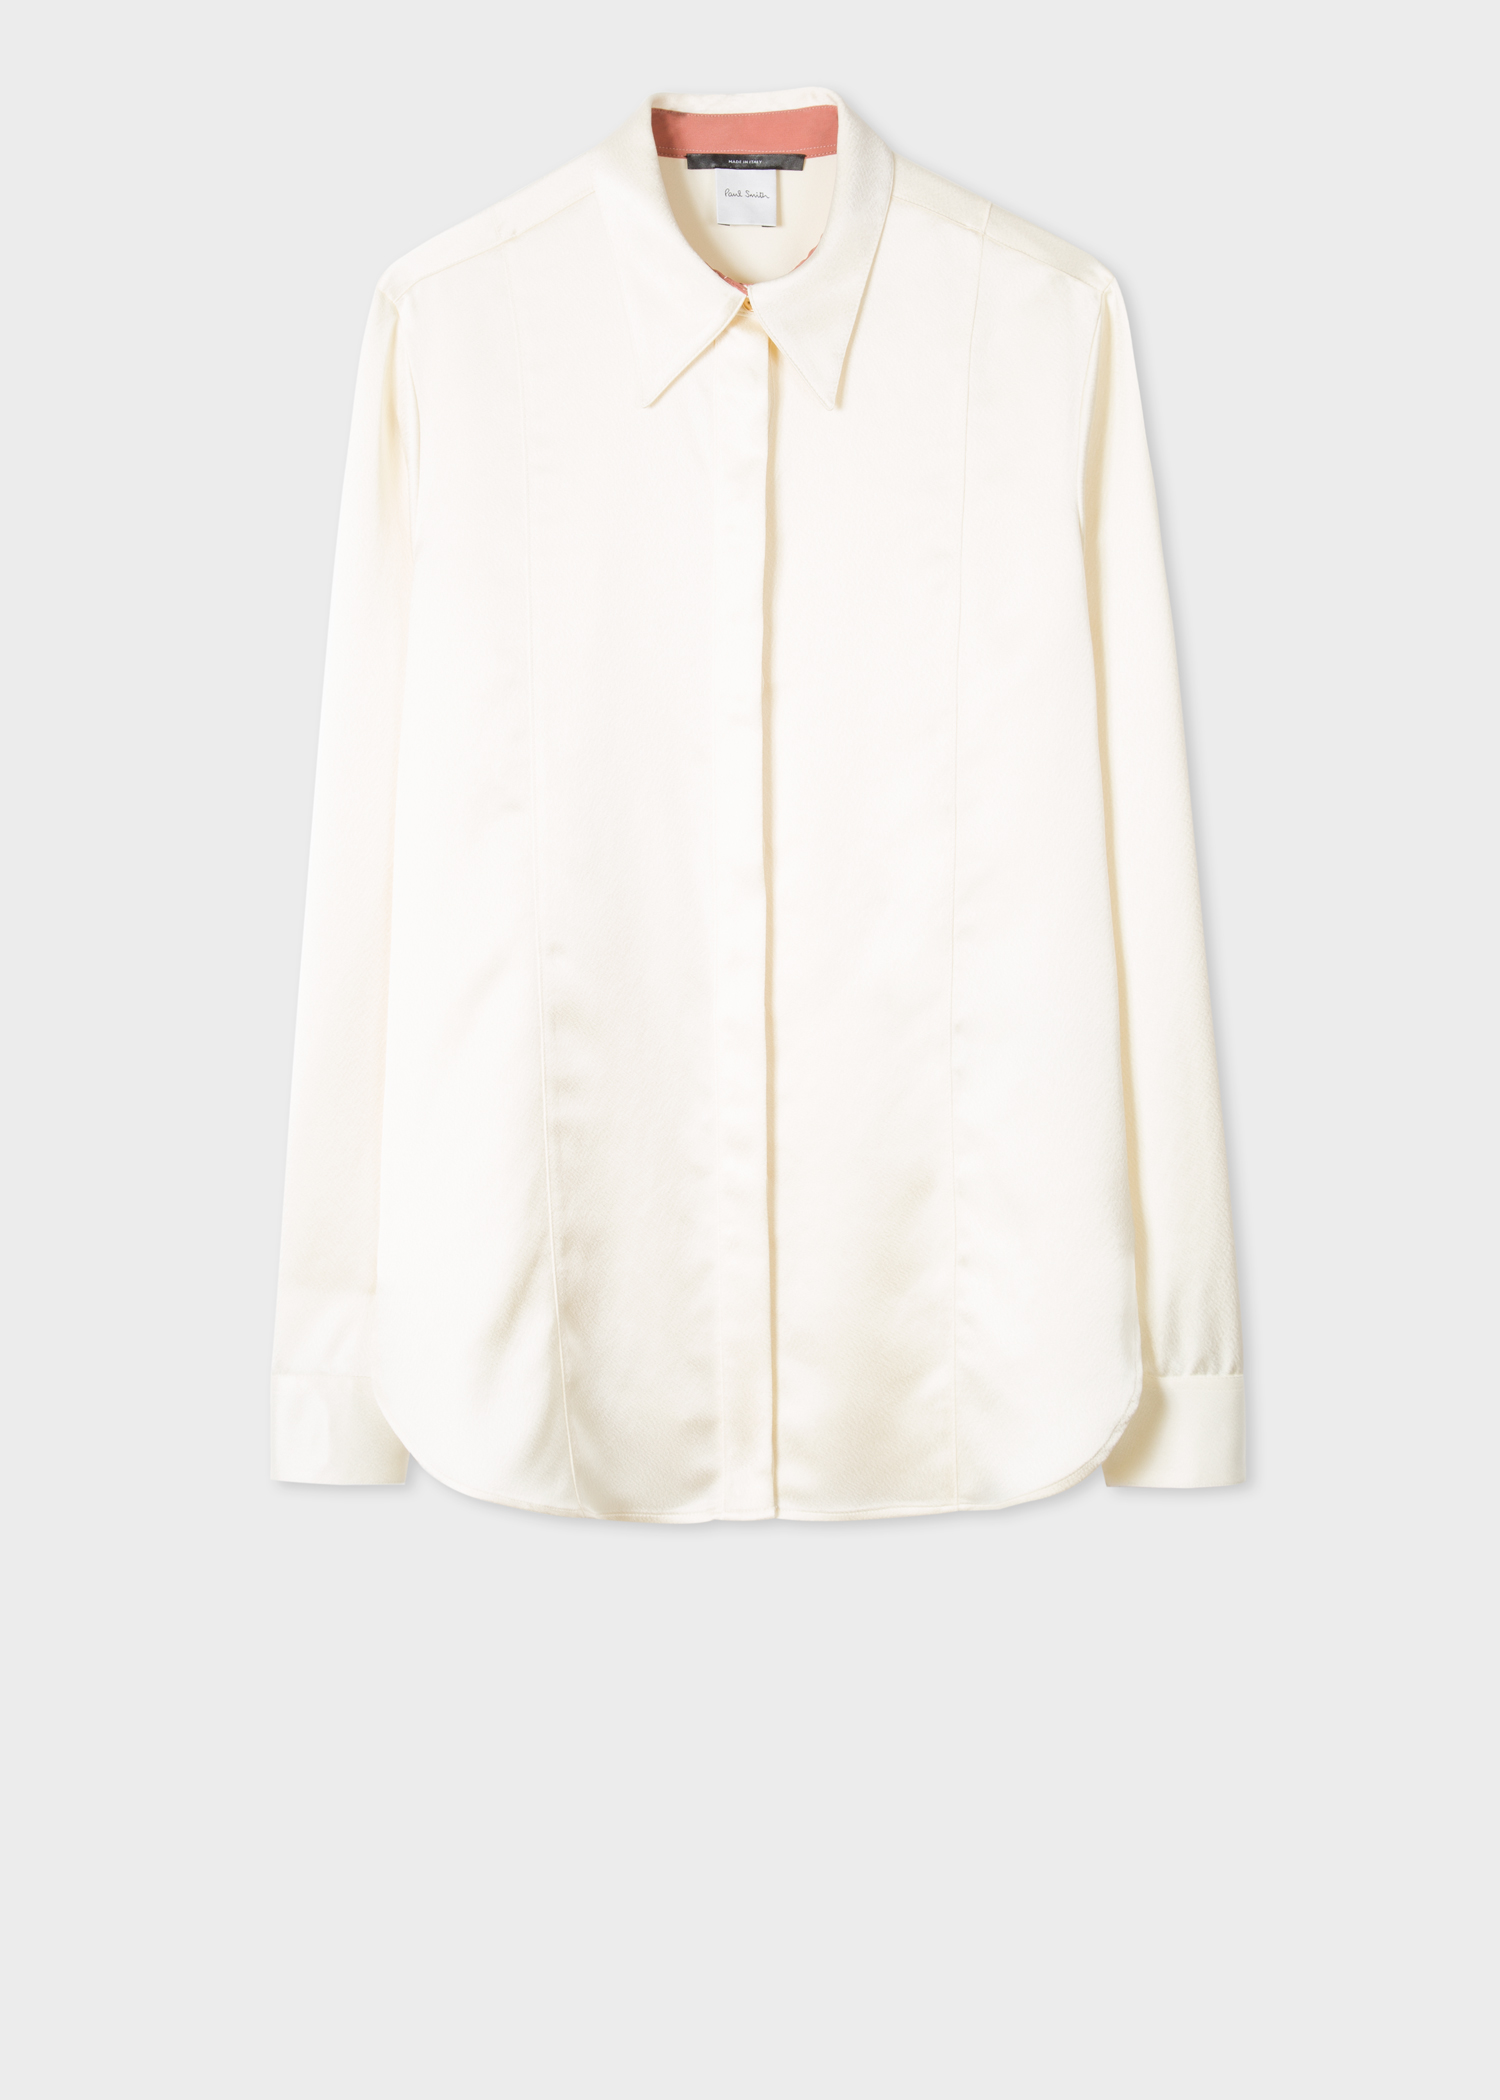 cfd7dab2ab58 Front View - Women's Cream Satin Panelled Tuxedo Shirt Paul Smith